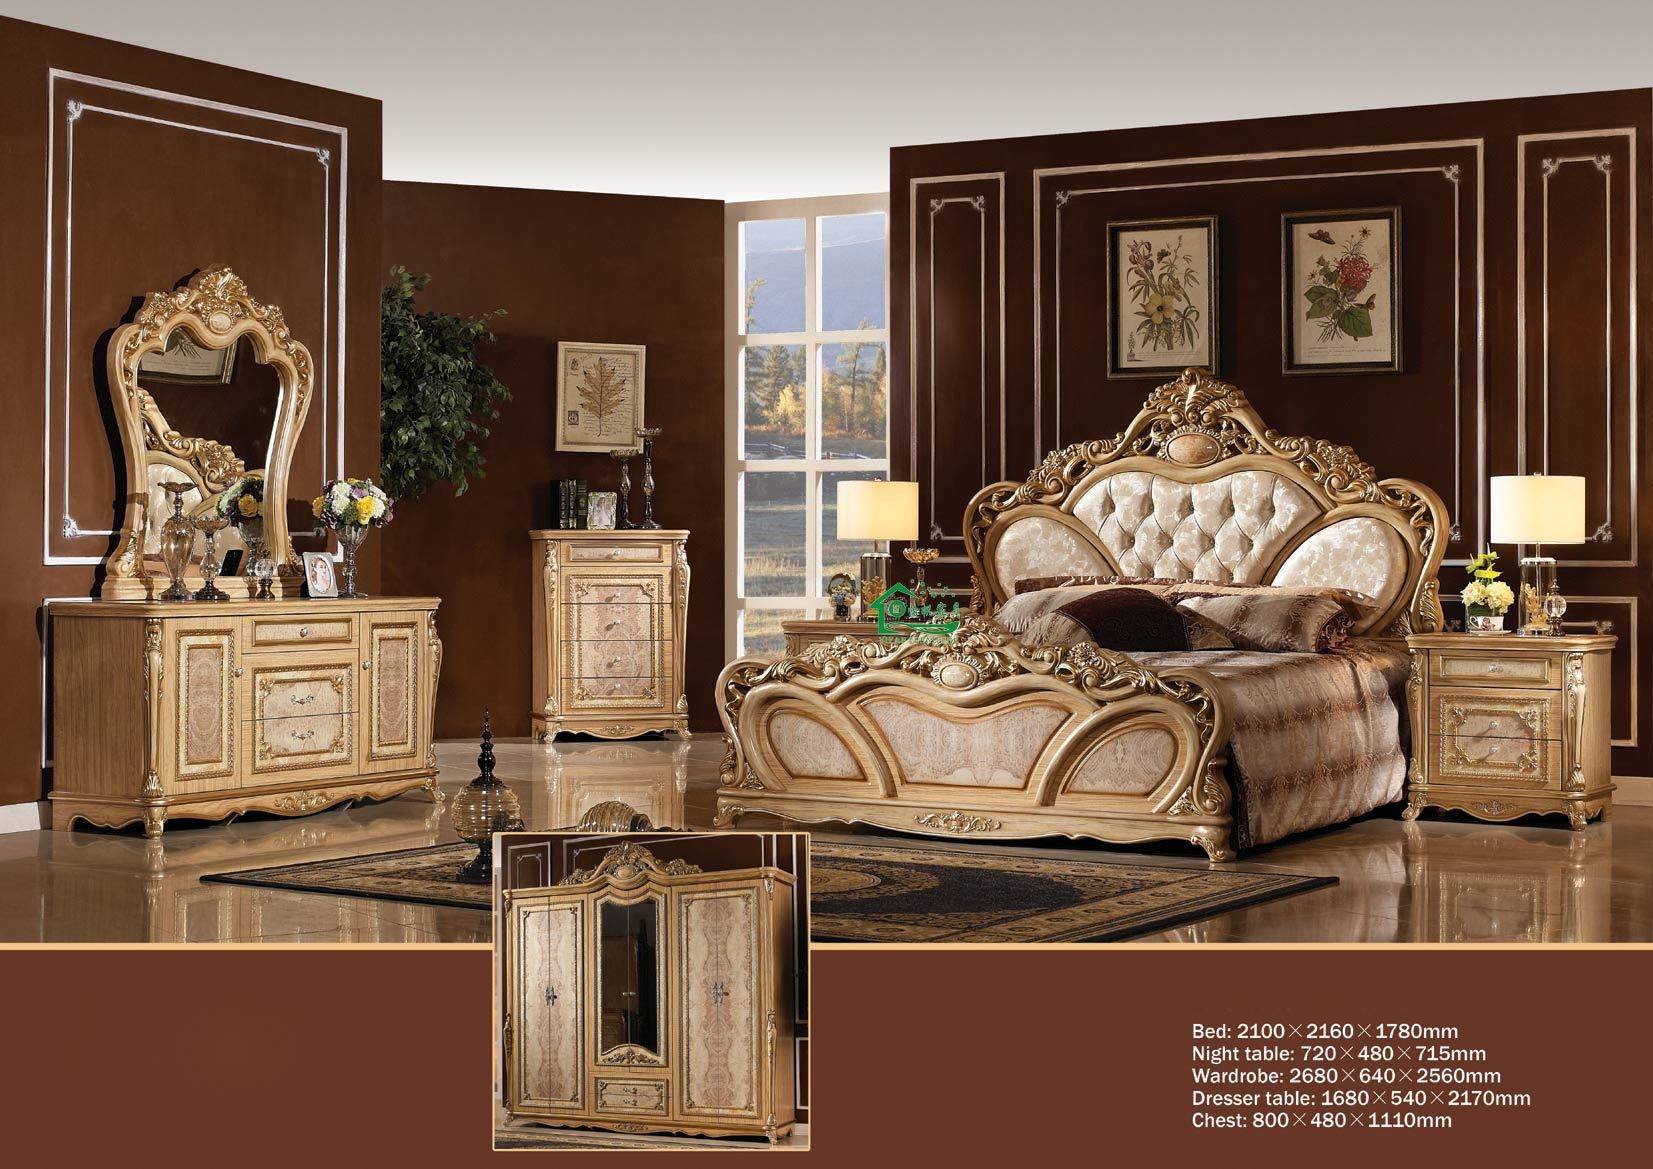 Sweet new design furniture plus sales promotion 2014 new design furniture  farnichar dizain waplag